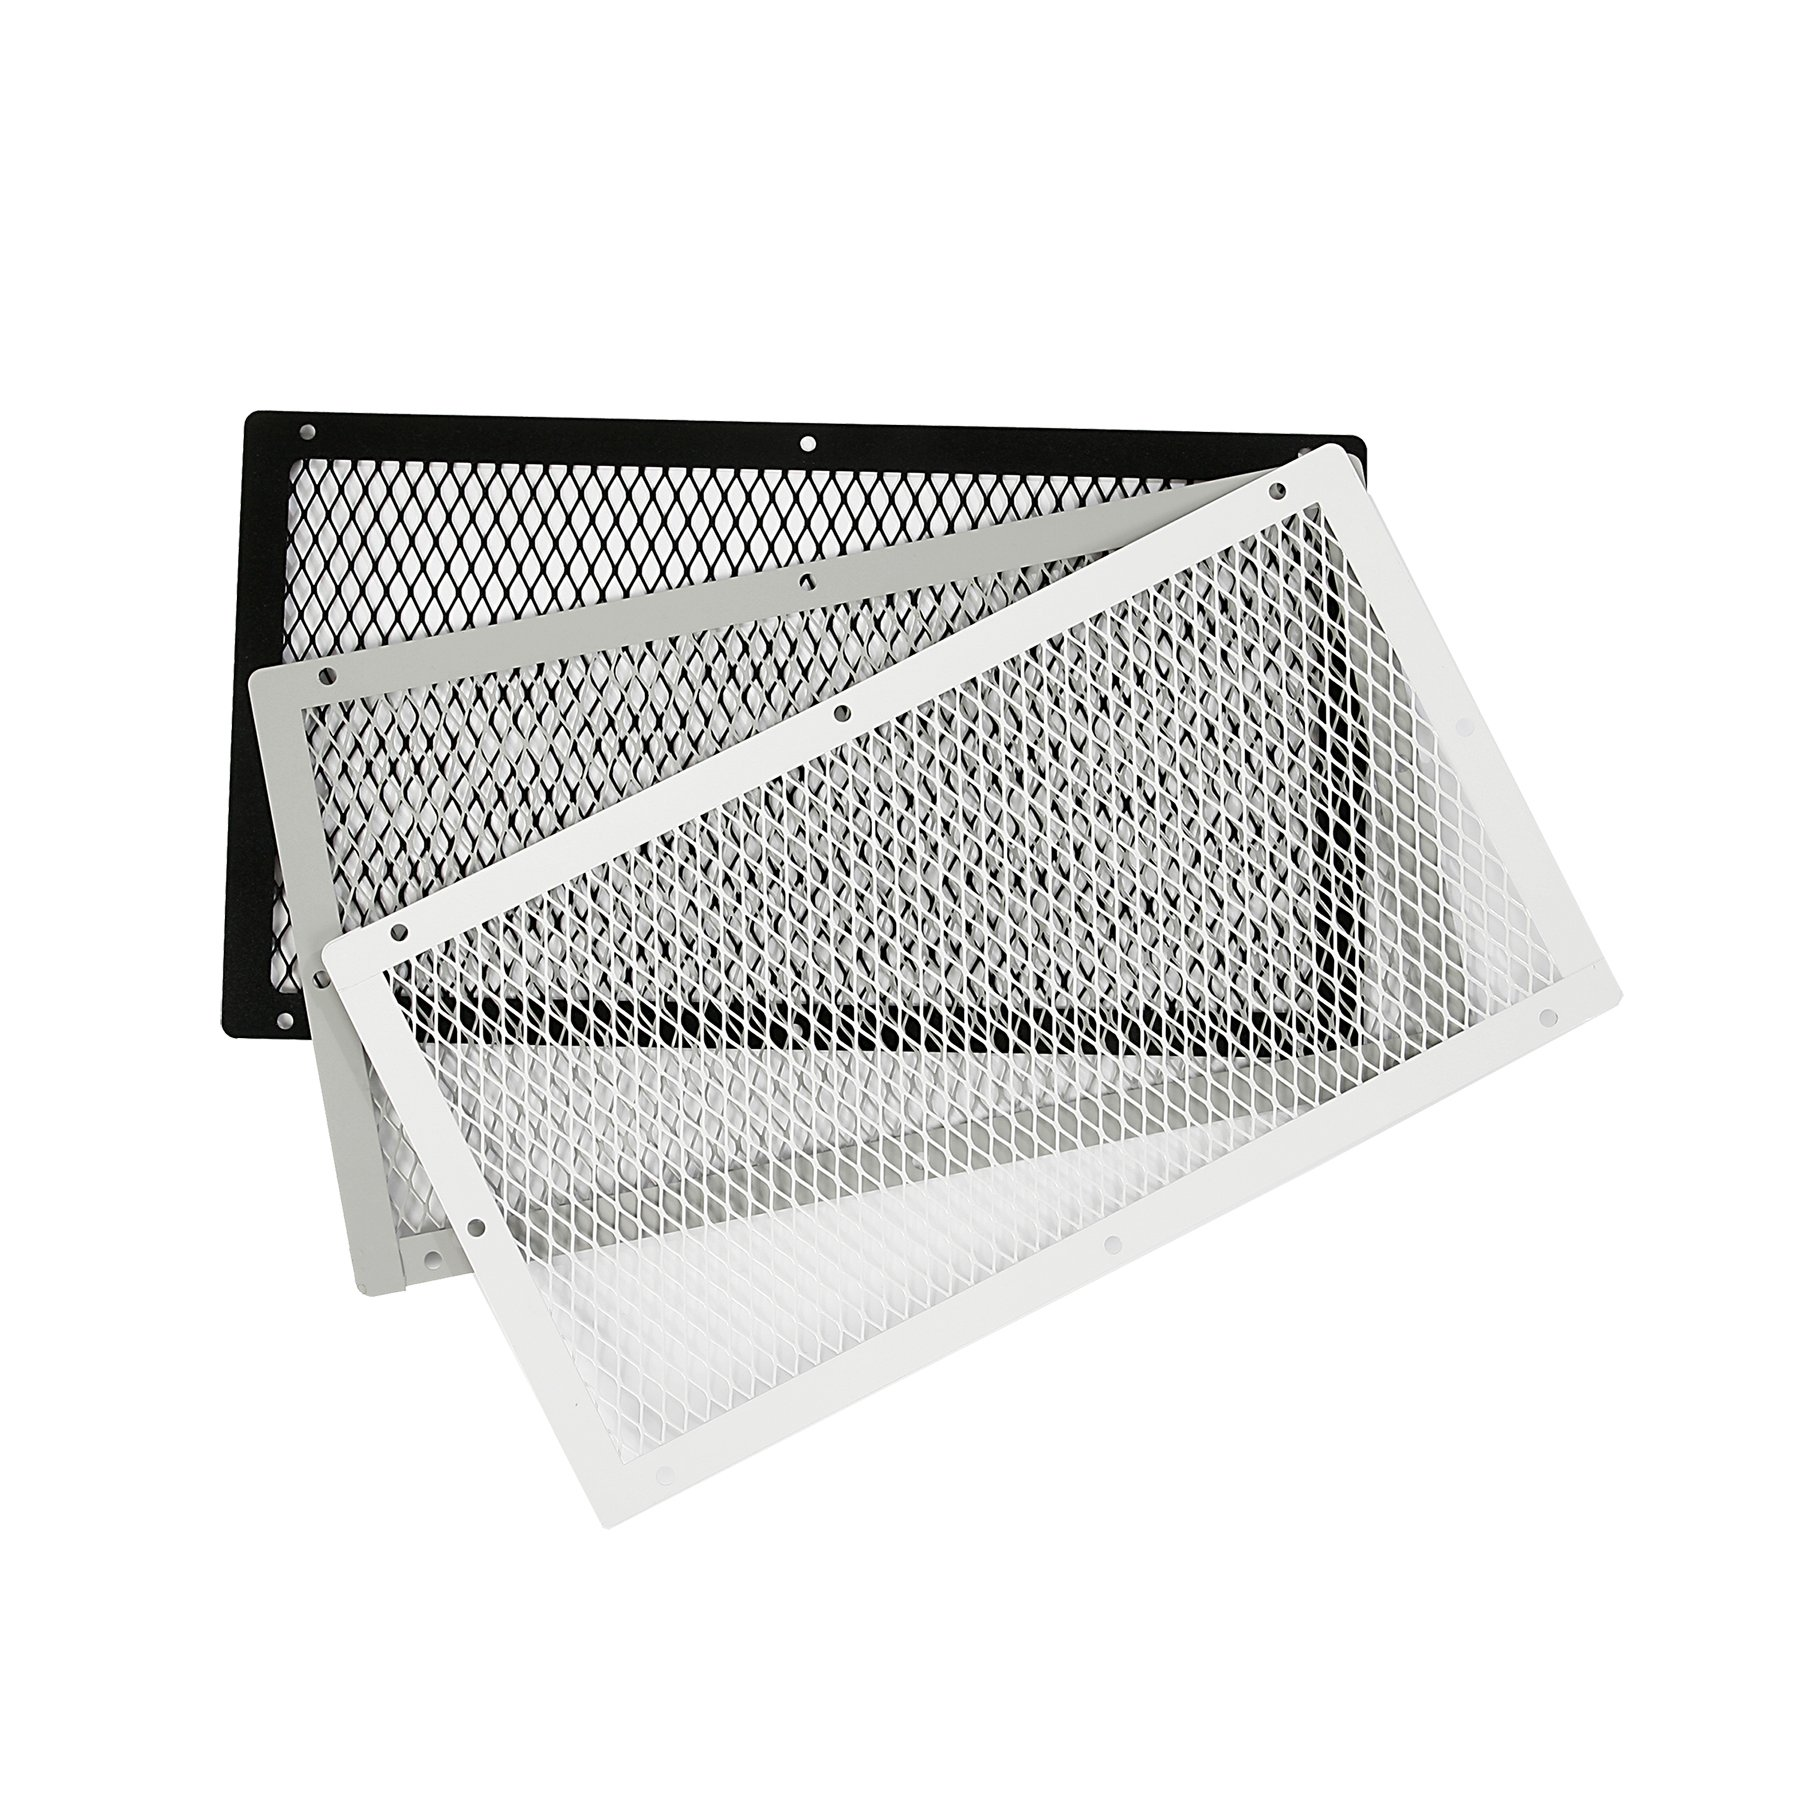 HY-C VG1018G-1W Galvanized Steel Foundation VentGuard with White Wildlife Exclusion Screen, 10'' x 0.25'' x 18''